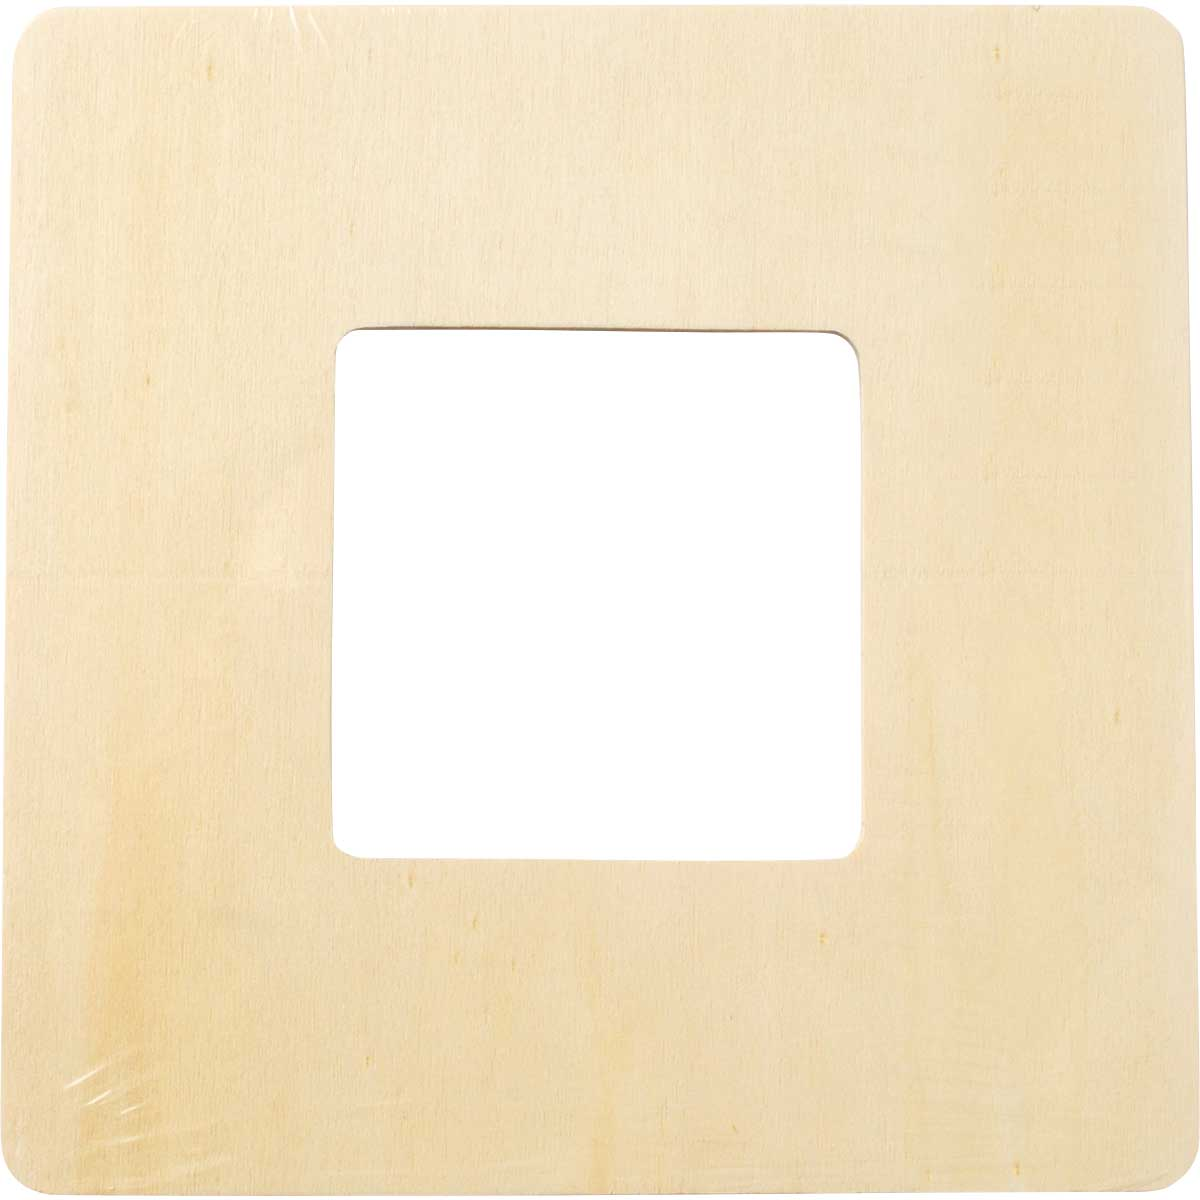 Shop Plaid Plaid ® Wood Surfaces - Frames - Square - 97540 | Plaid ...